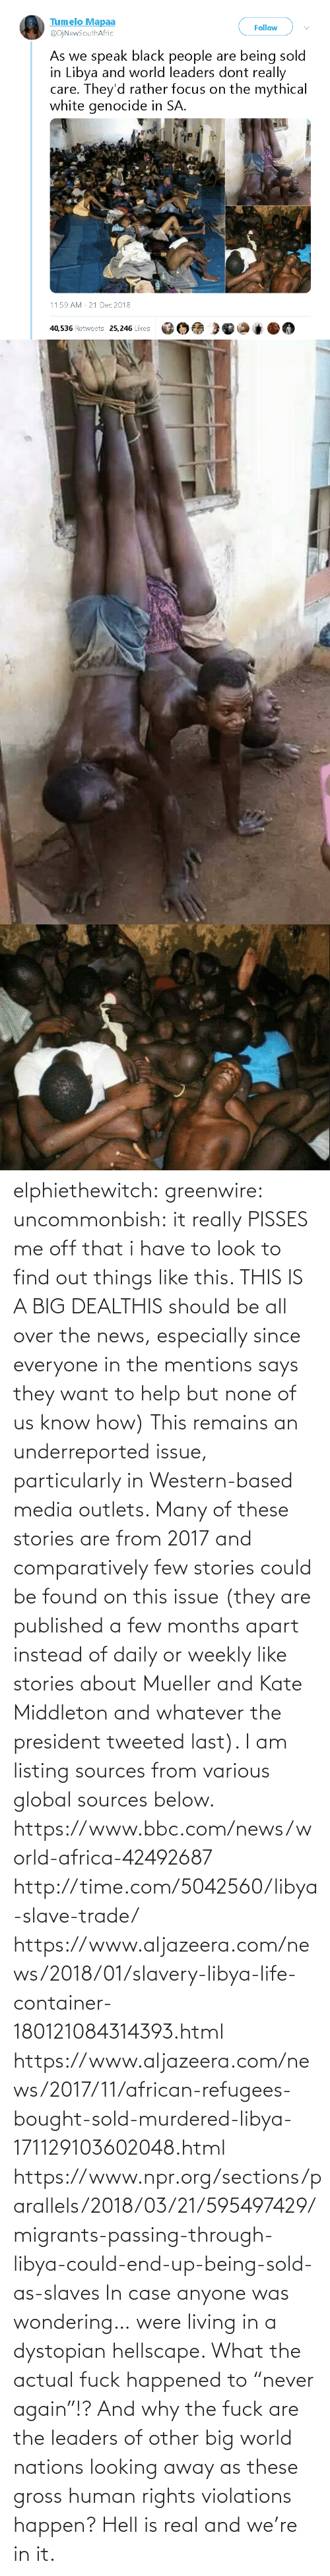 "find: elphiethewitch: greenwire:  uncommonbish:  it really PISSES me off that i have to look to find out things like this. THIS IS A BIG DEALTHIS should be all over the news, especially since everyone in the mentions says they want to help but none of us know how)  This remains an underreported issue, particularly in Western-based media outlets. Many of these stories are from 2017 and comparatively few stories could be found on this issue (they are published a few months apart instead of daily or weekly like stories about Mueller and Kate Middleton and whatever the president tweeted last). I am listing sources from various global sources below.  https://www.bbc.com/news/world-africa-42492687 http://time.com/5042560/libya-slave-trade/ https://www.aljazeera.com/news/2018/01/slavery-libya-life-container-180121084314393.html https://www.aljazeera.com/news/2017/11/african-refugees-bought-sold-murdered-libya-171129103602048.html https://www.npr.org/sections/parallels/2018/03/21/595497429/migrants-passing-through-libya-could-end-up-being-sold-as-slaves   In case anyone was wondering… were living in a dystopian hellscape.  What the actual fuck happened to ""never again""!? And why the fuck are the leaders of other big world nations looking away as these gross human rights violations happen?  Hell is real and we're in it."